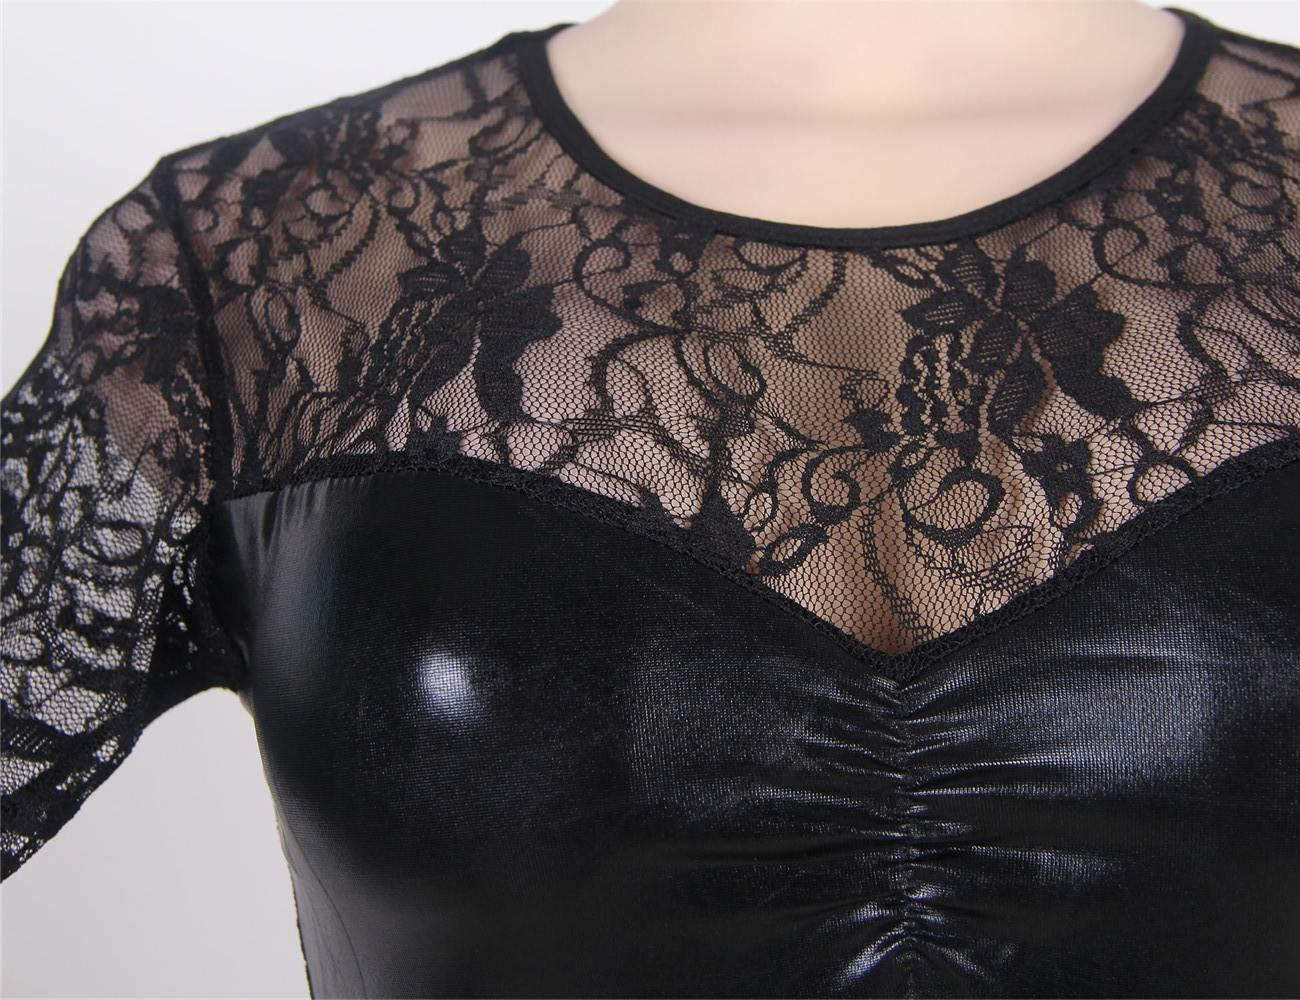 PVC & Lace Mini Dress close up